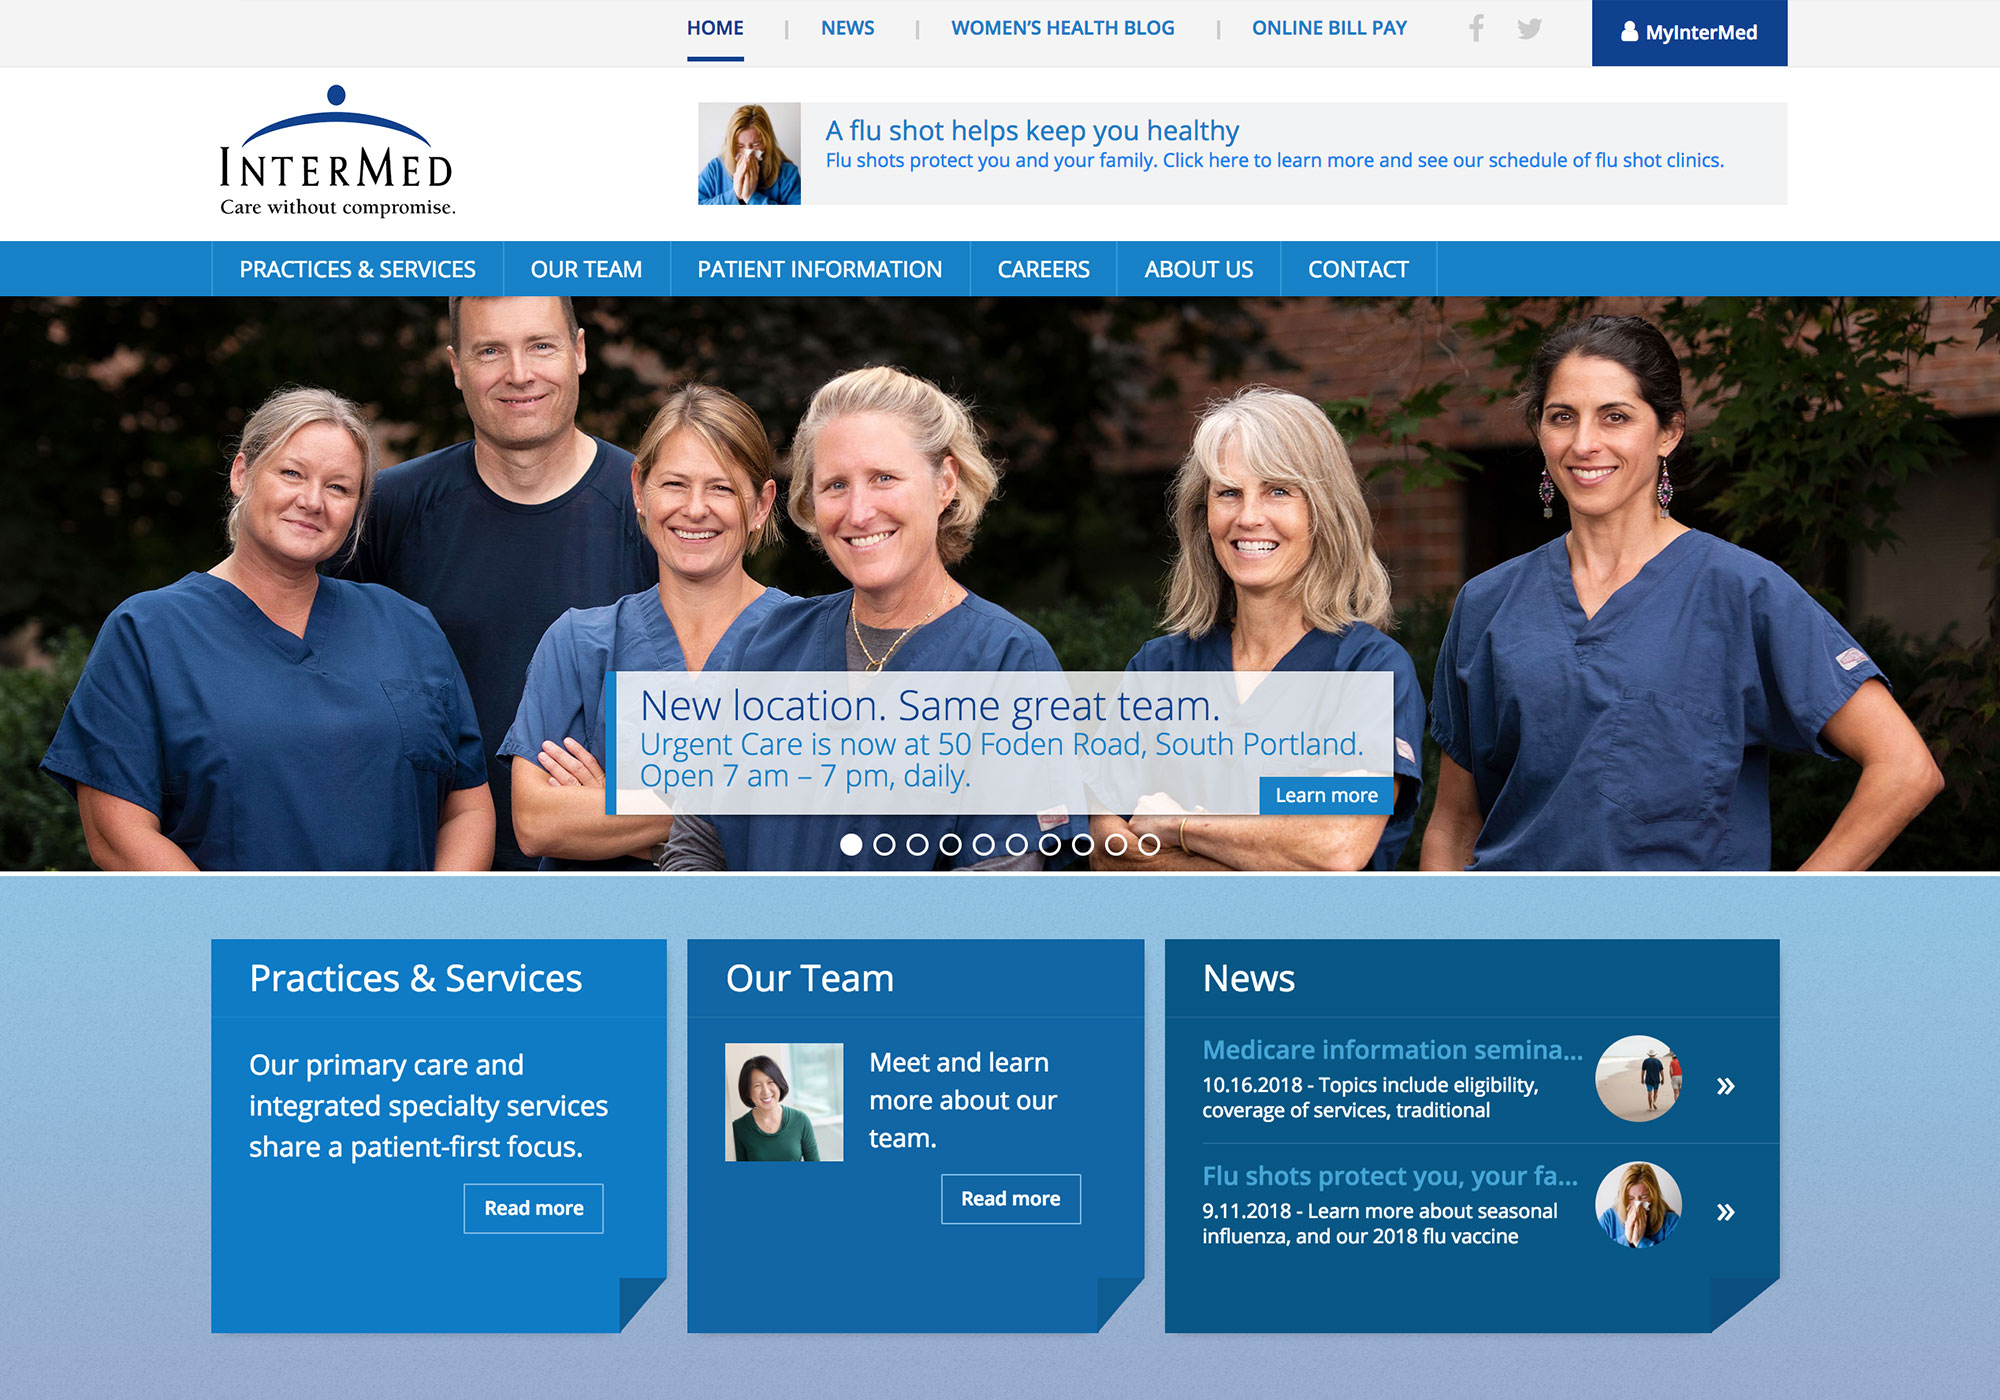 A screenshot of the homepage featuring the Urgent Care Team at InterMed. The website was designed and programmed by Maine creative website design company, SlickFish Studios